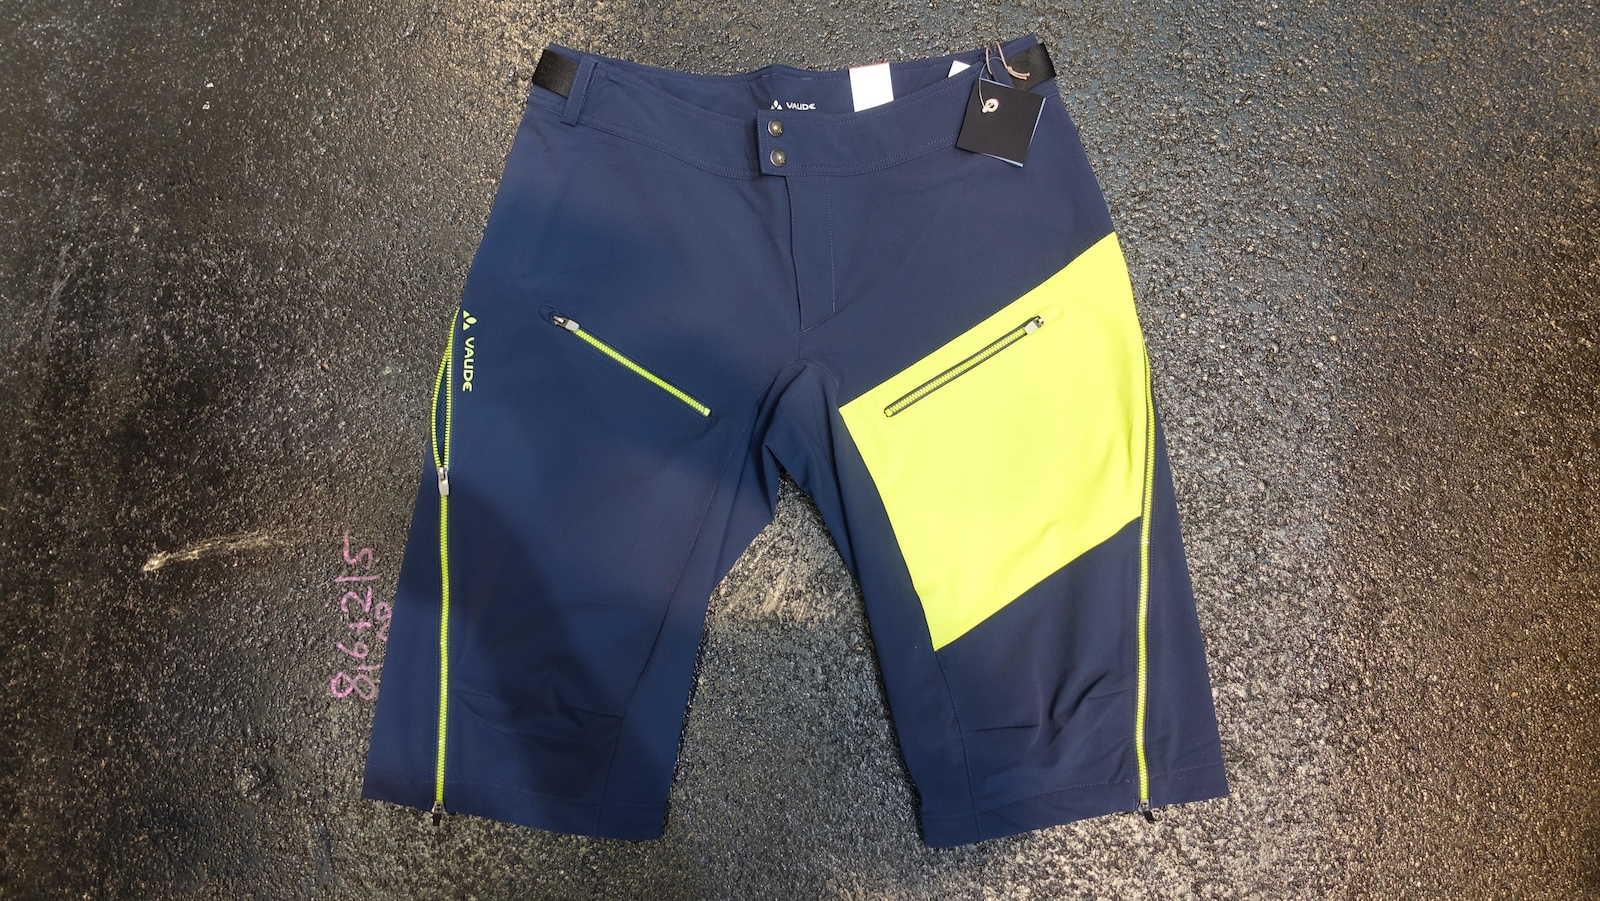 The two different colour-ways of the Moab jersey and shorts look bright and modern. The shorts retail for 120 and the jersey is 55 for the long sleeve and 50 for the short sleeve.